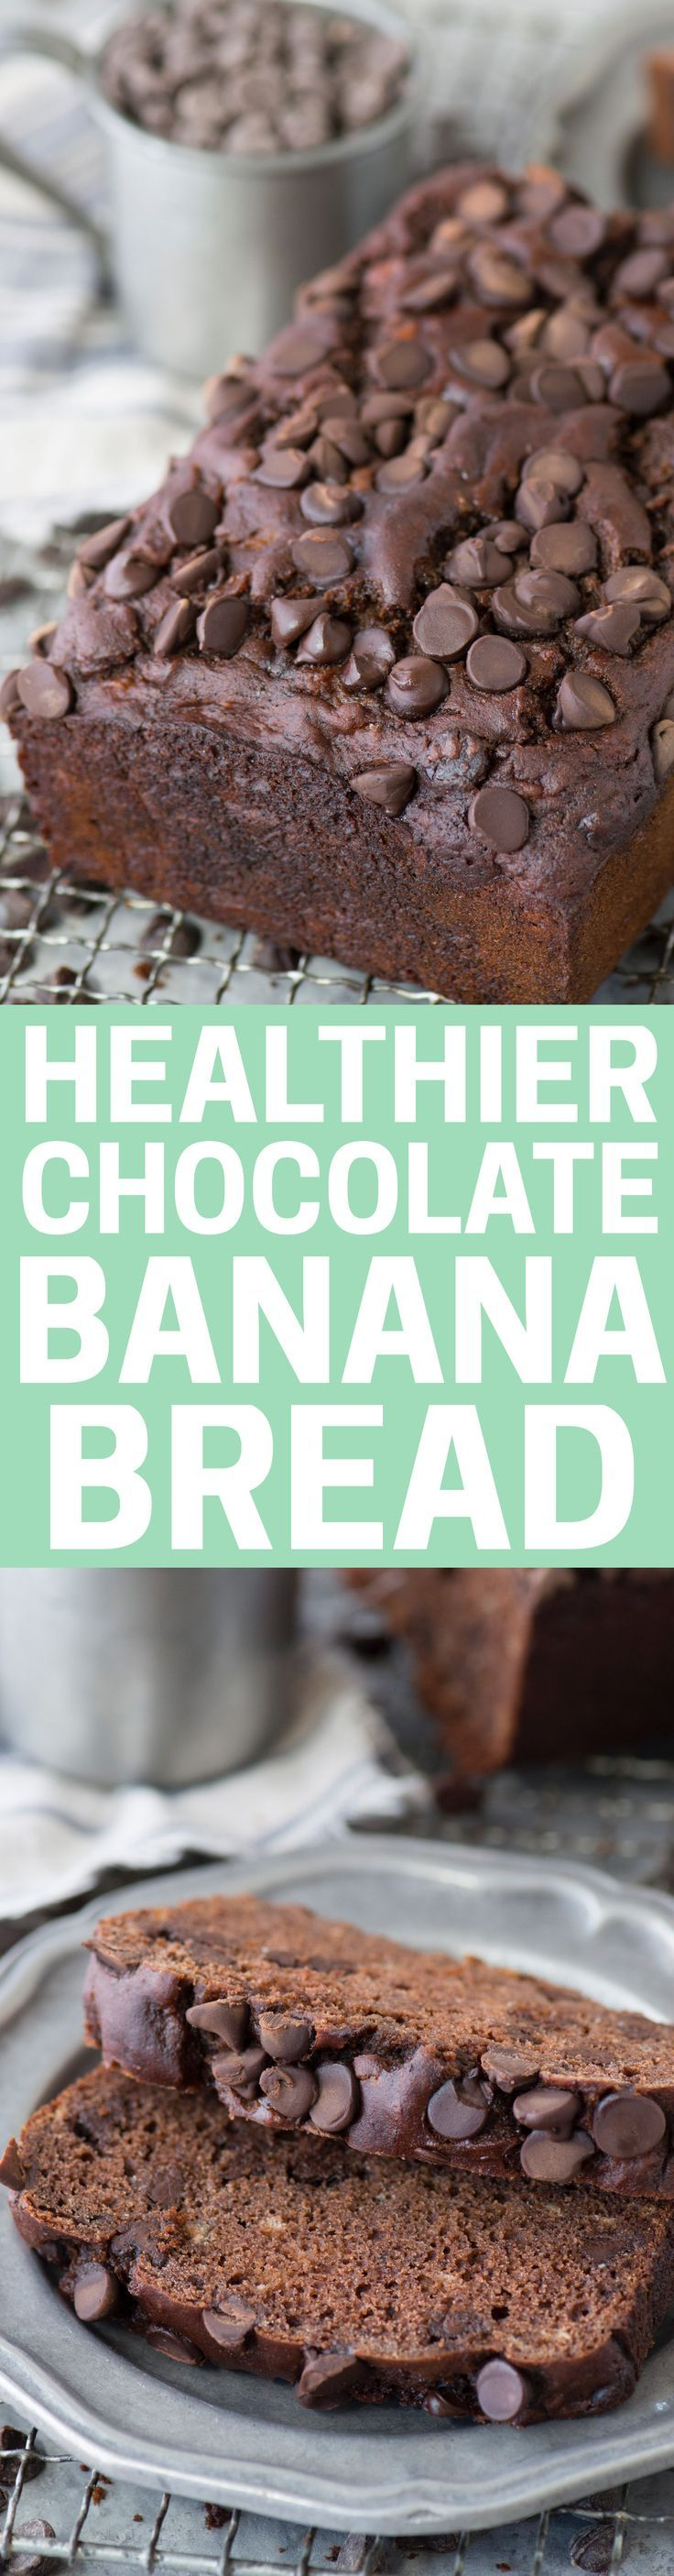 No butter, oil, or granulated sugar in this Healthier Chocolate Banana Bread. Uses greek yogurt and honey. Cut back on the chocolate chips to make it even healthier.